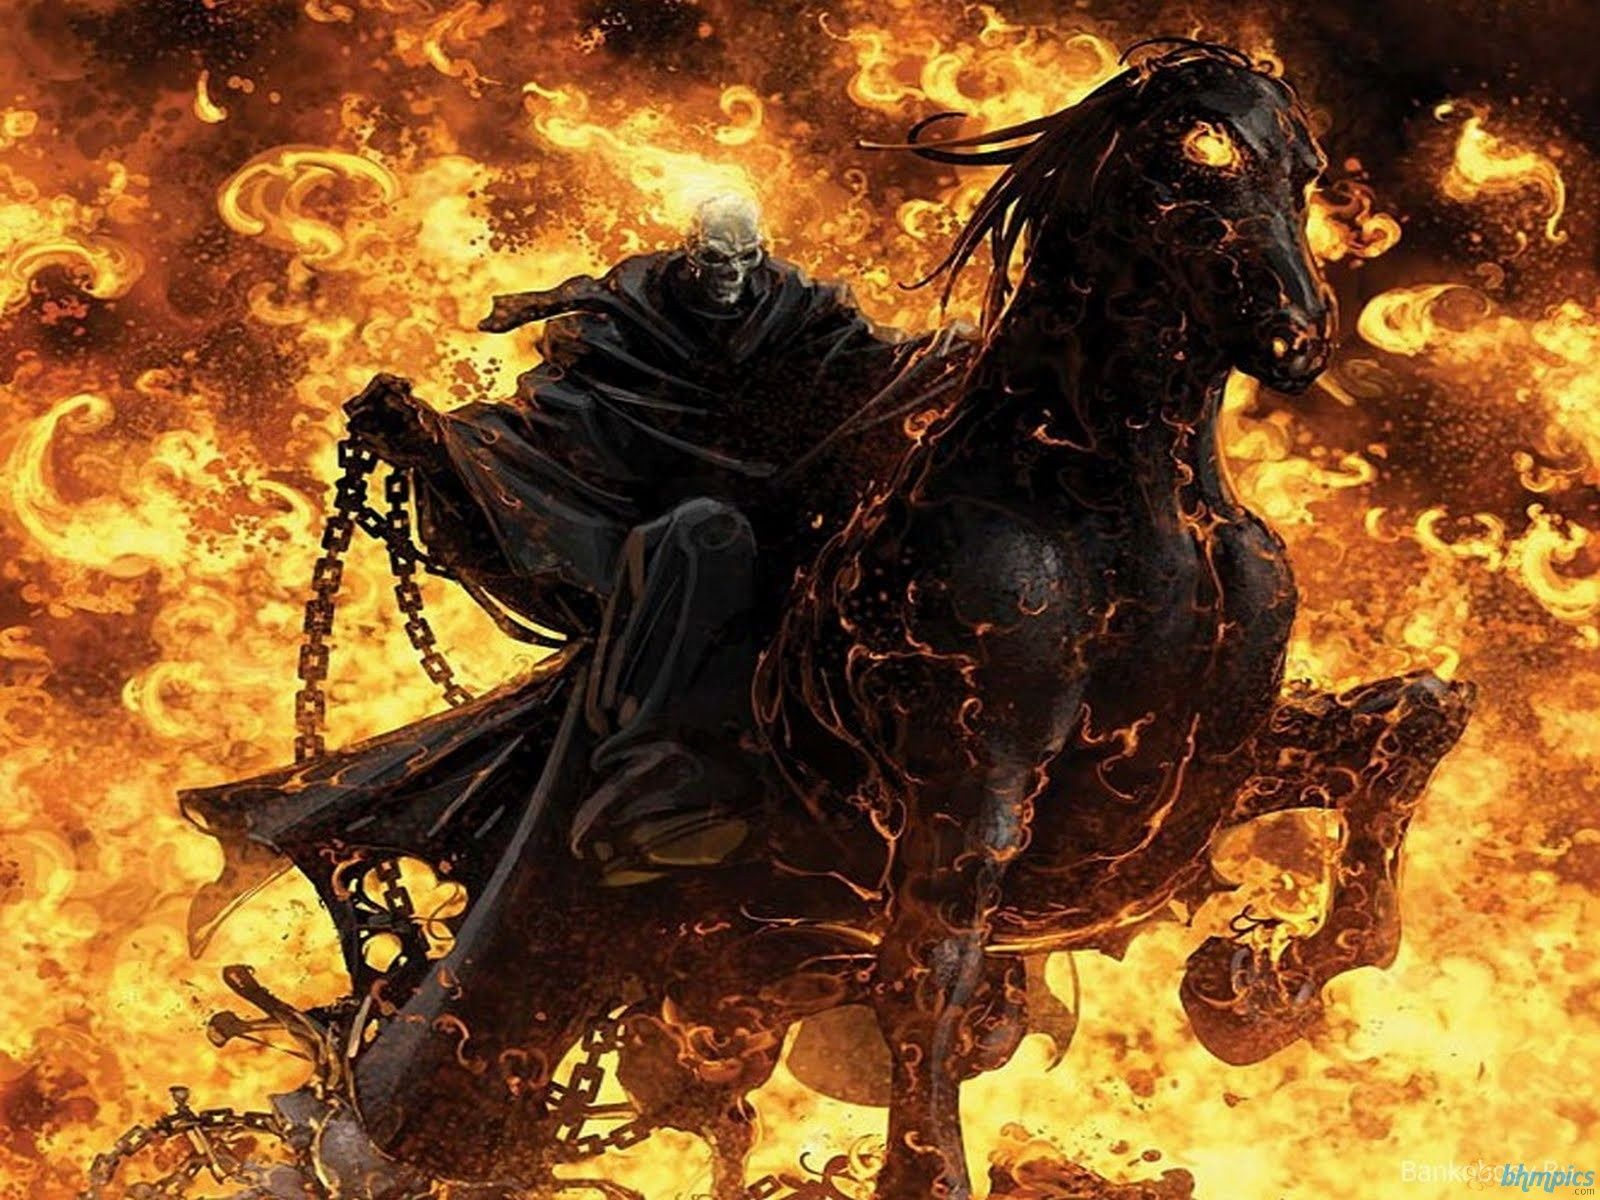 Ghost Rider Spirit Of Vengeance Is 3D Fantasy Action Movie Primarily Based On A Marvel Comic Character